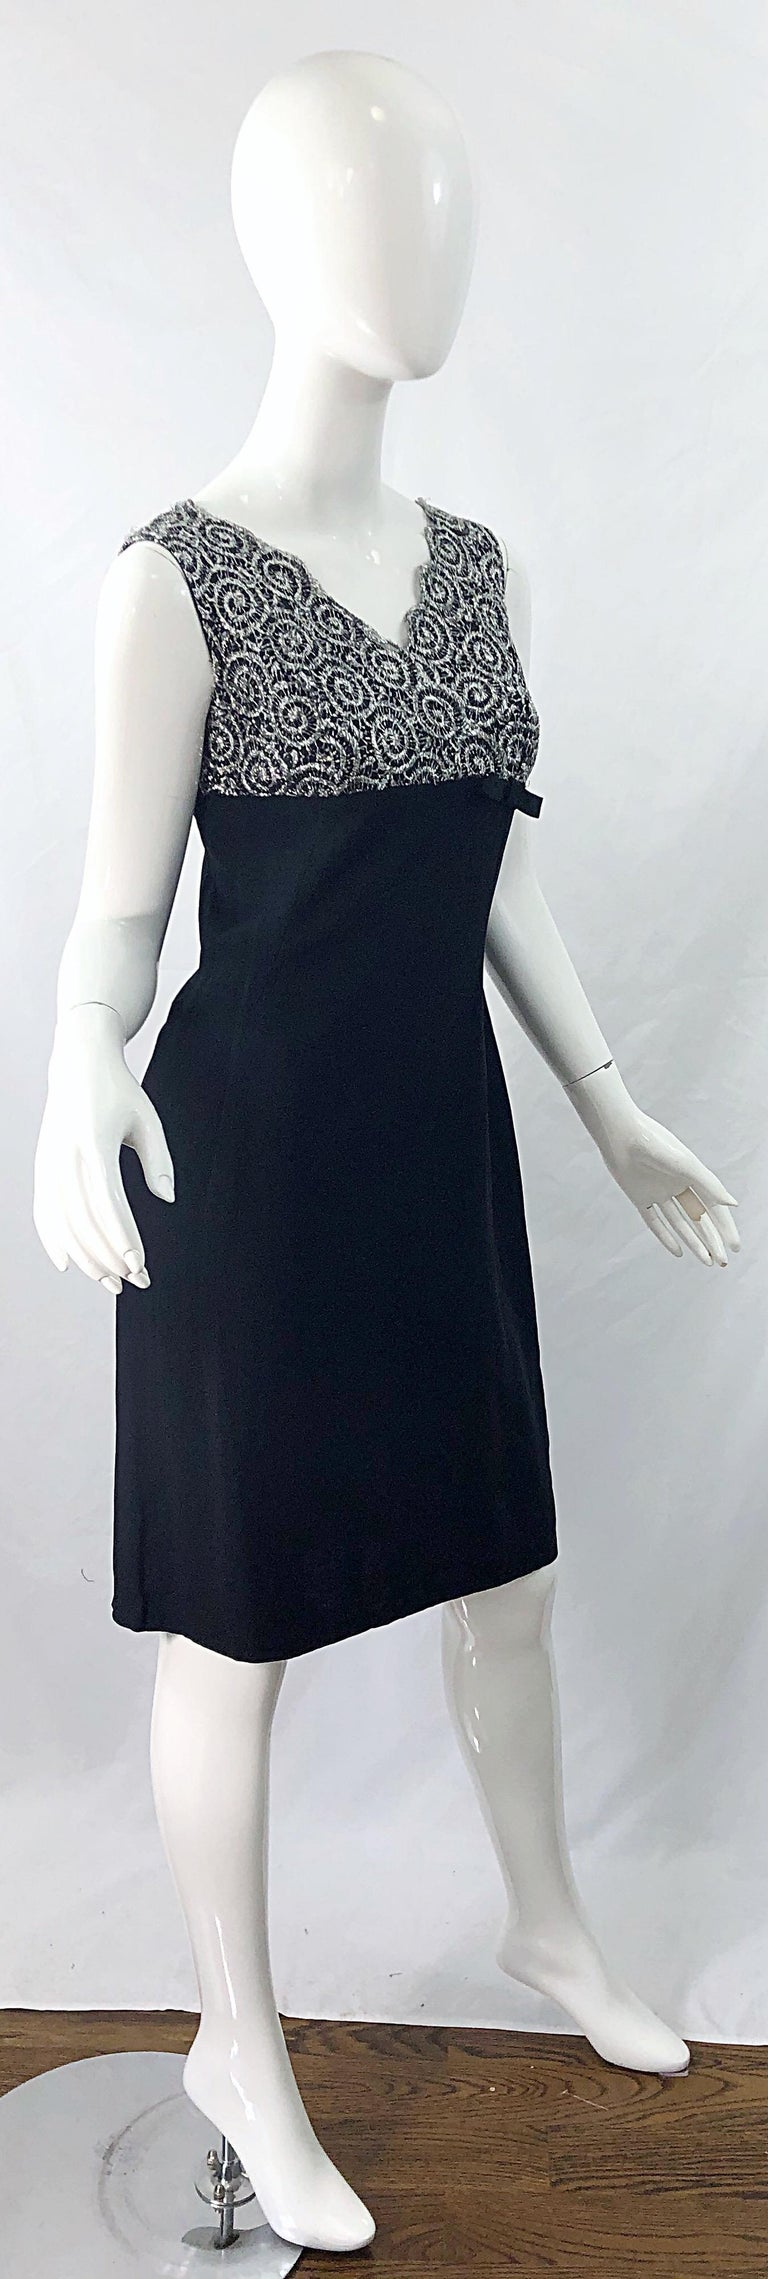 Chic 1960s Black and Silver Metallic Lace Rayon Crepe Vintage 60s Sheath Dress For Sale 4